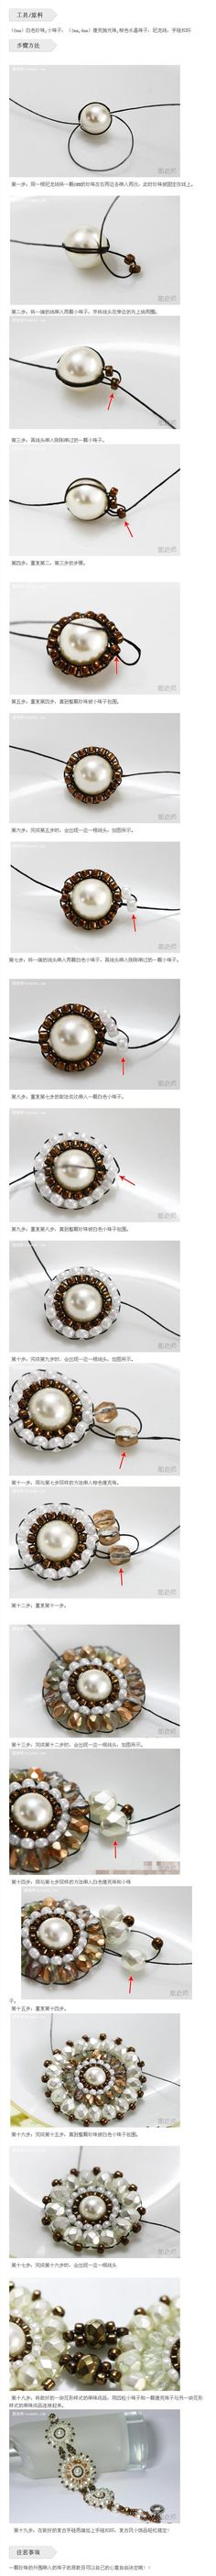 Bead tutorial -